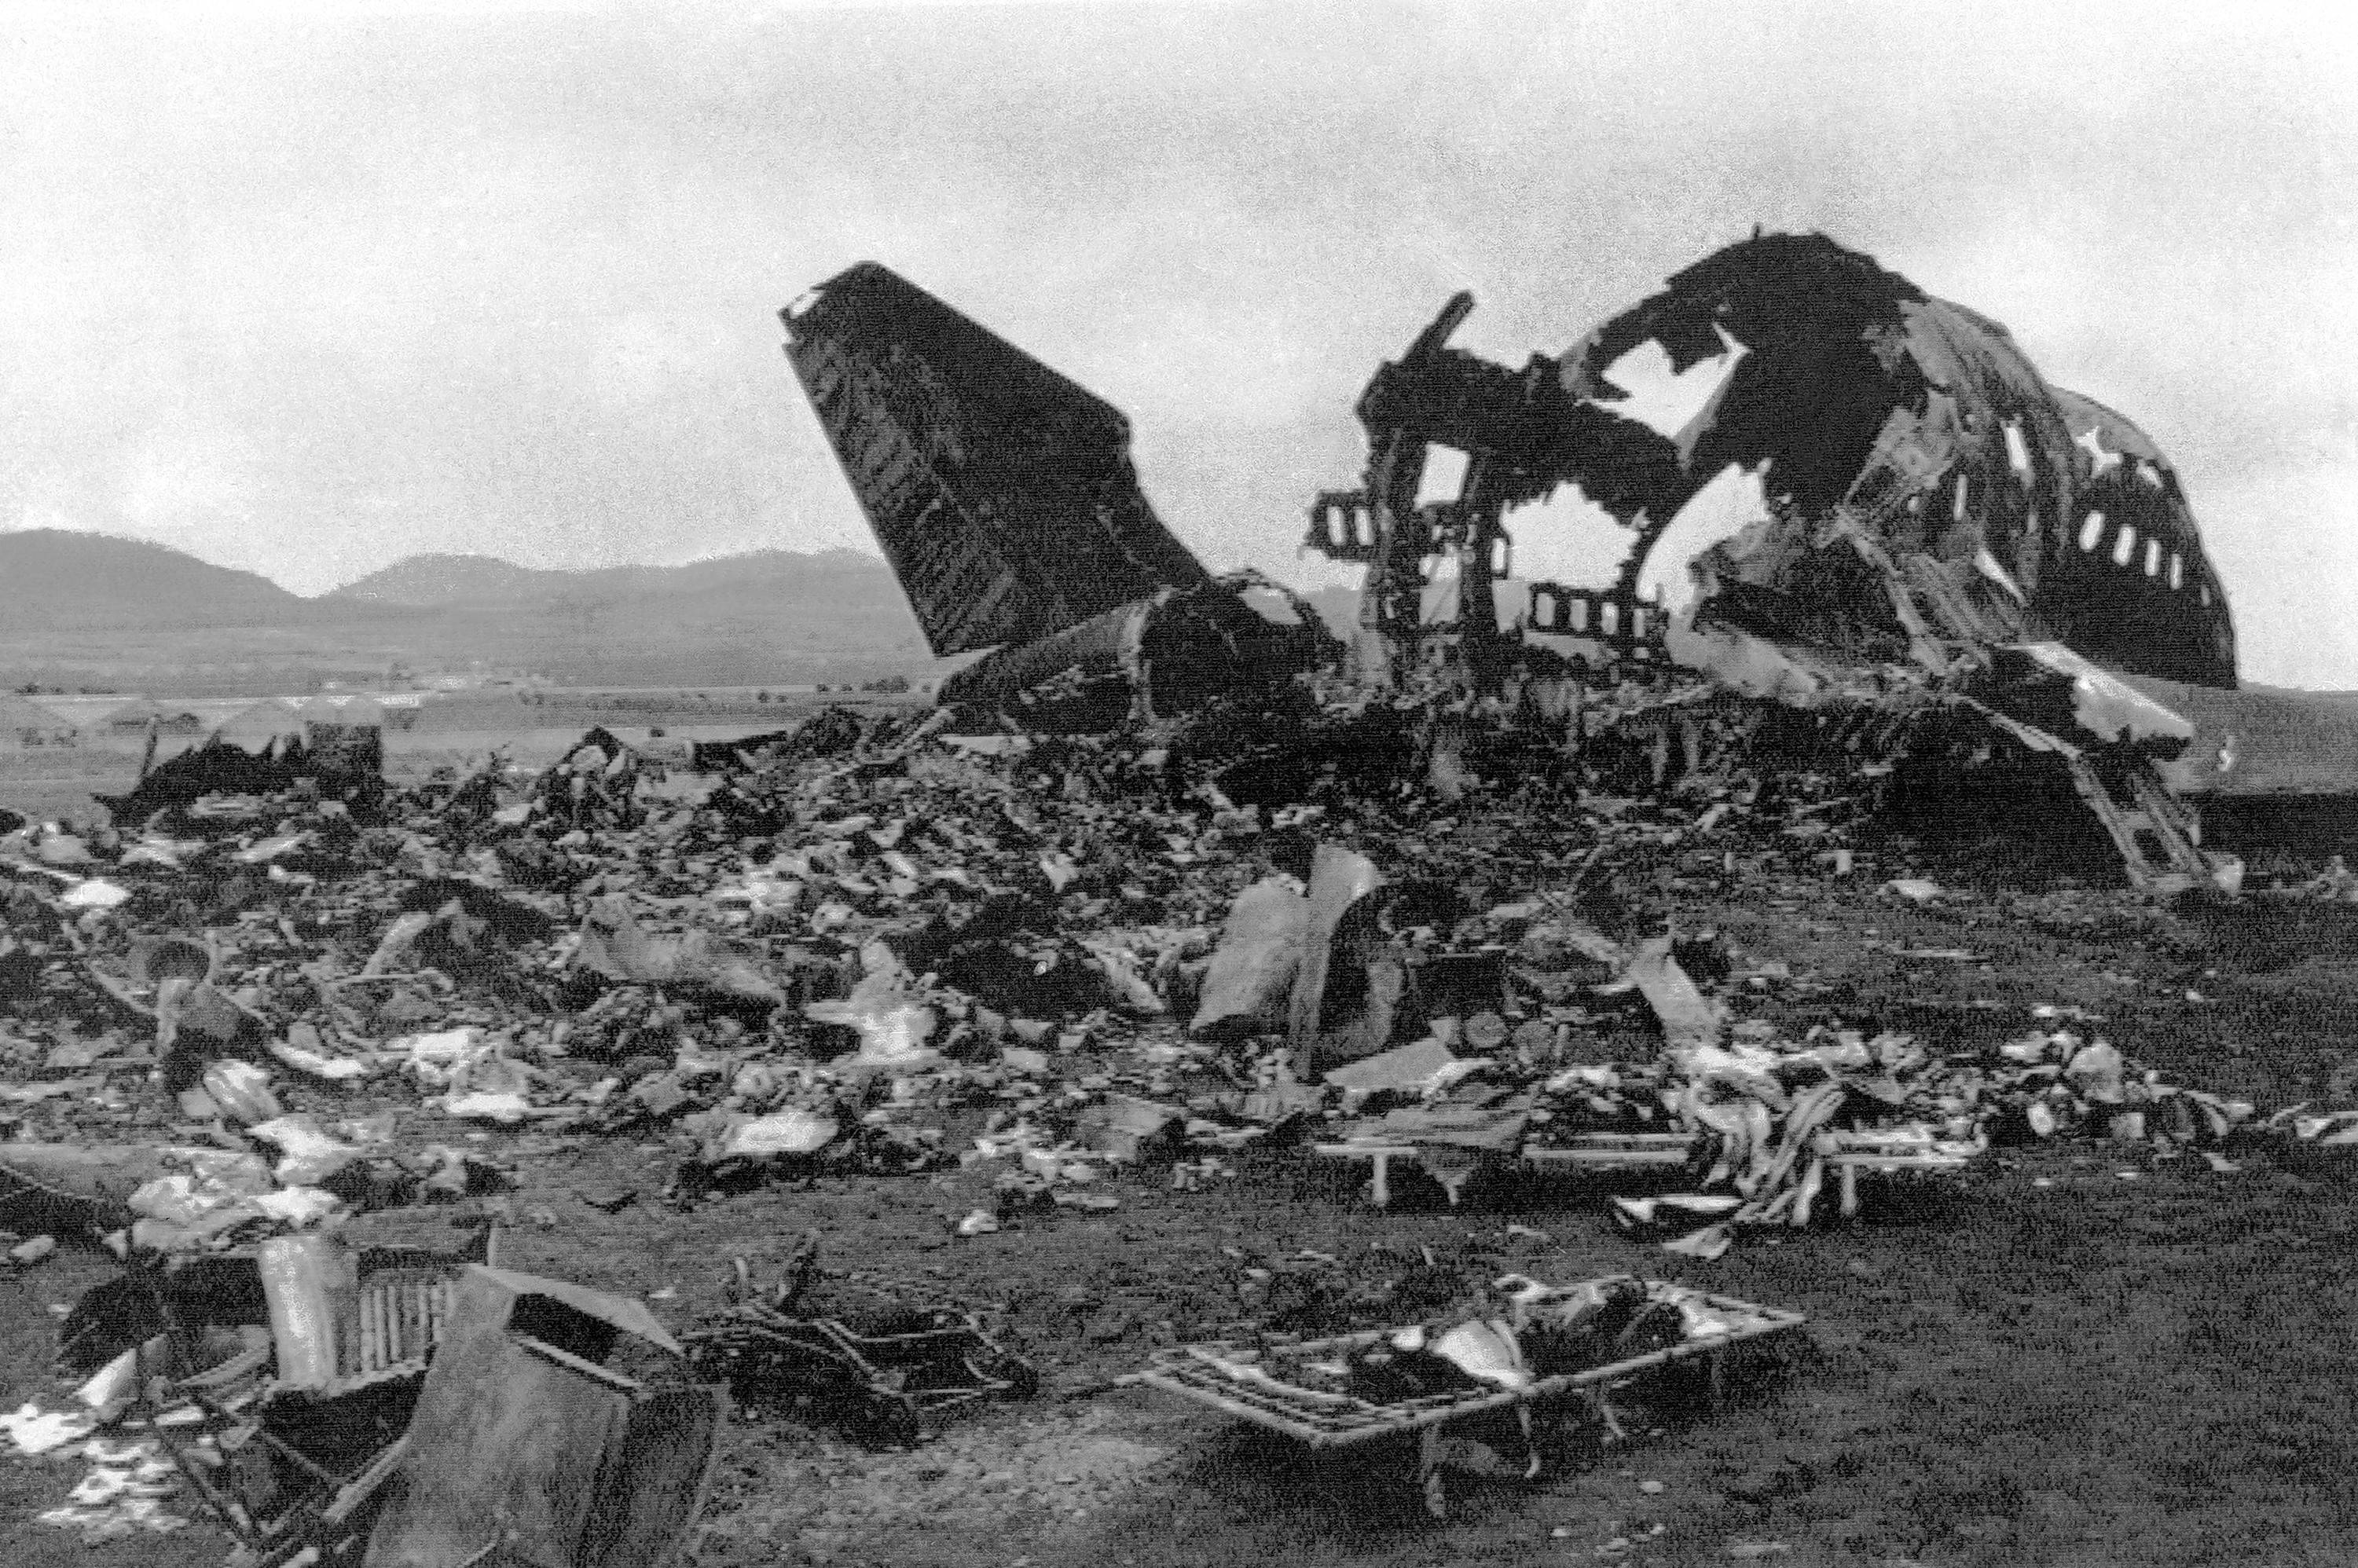 Wreckage from one of two Boeing 747 jumbo jetliners is strewed across Los Rodeos airport at Santa Cruz de Tenerife, a day after the March 27, 1977, collision that remains the worst in aviation history.